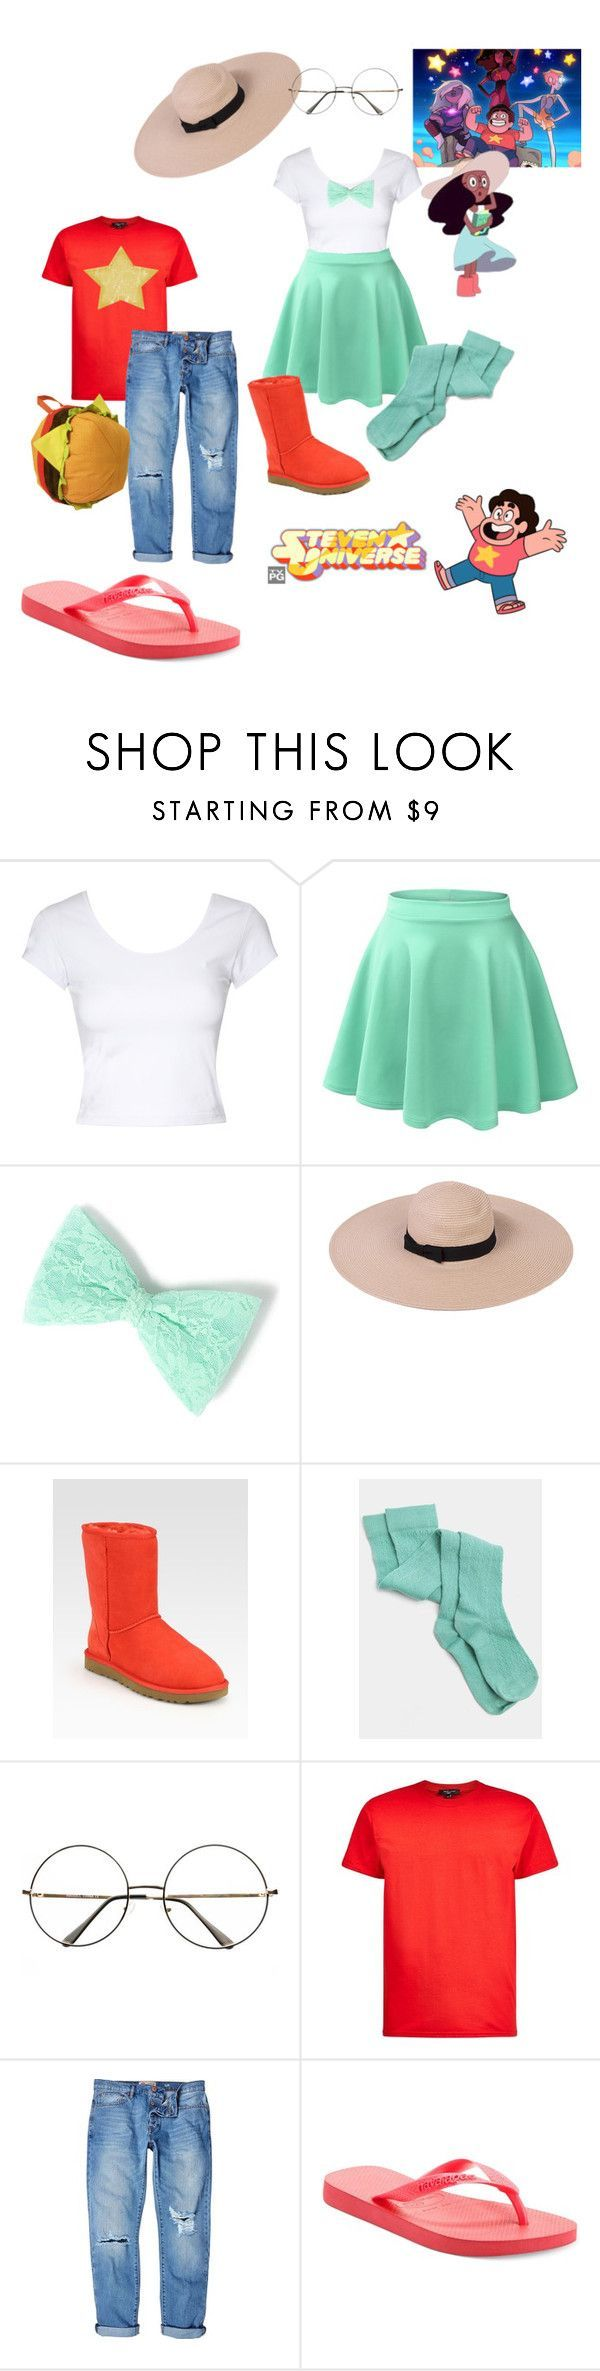 """""""Steven Universe !!"""" by danii-lopez-nightsword ❤ liked on Polyvore featuring Jane Norman, LE3NO, UGG Australia, River Island, Havaianas, Halloween, cosplay, halloweencostume, Connie and stevenuniverse"""